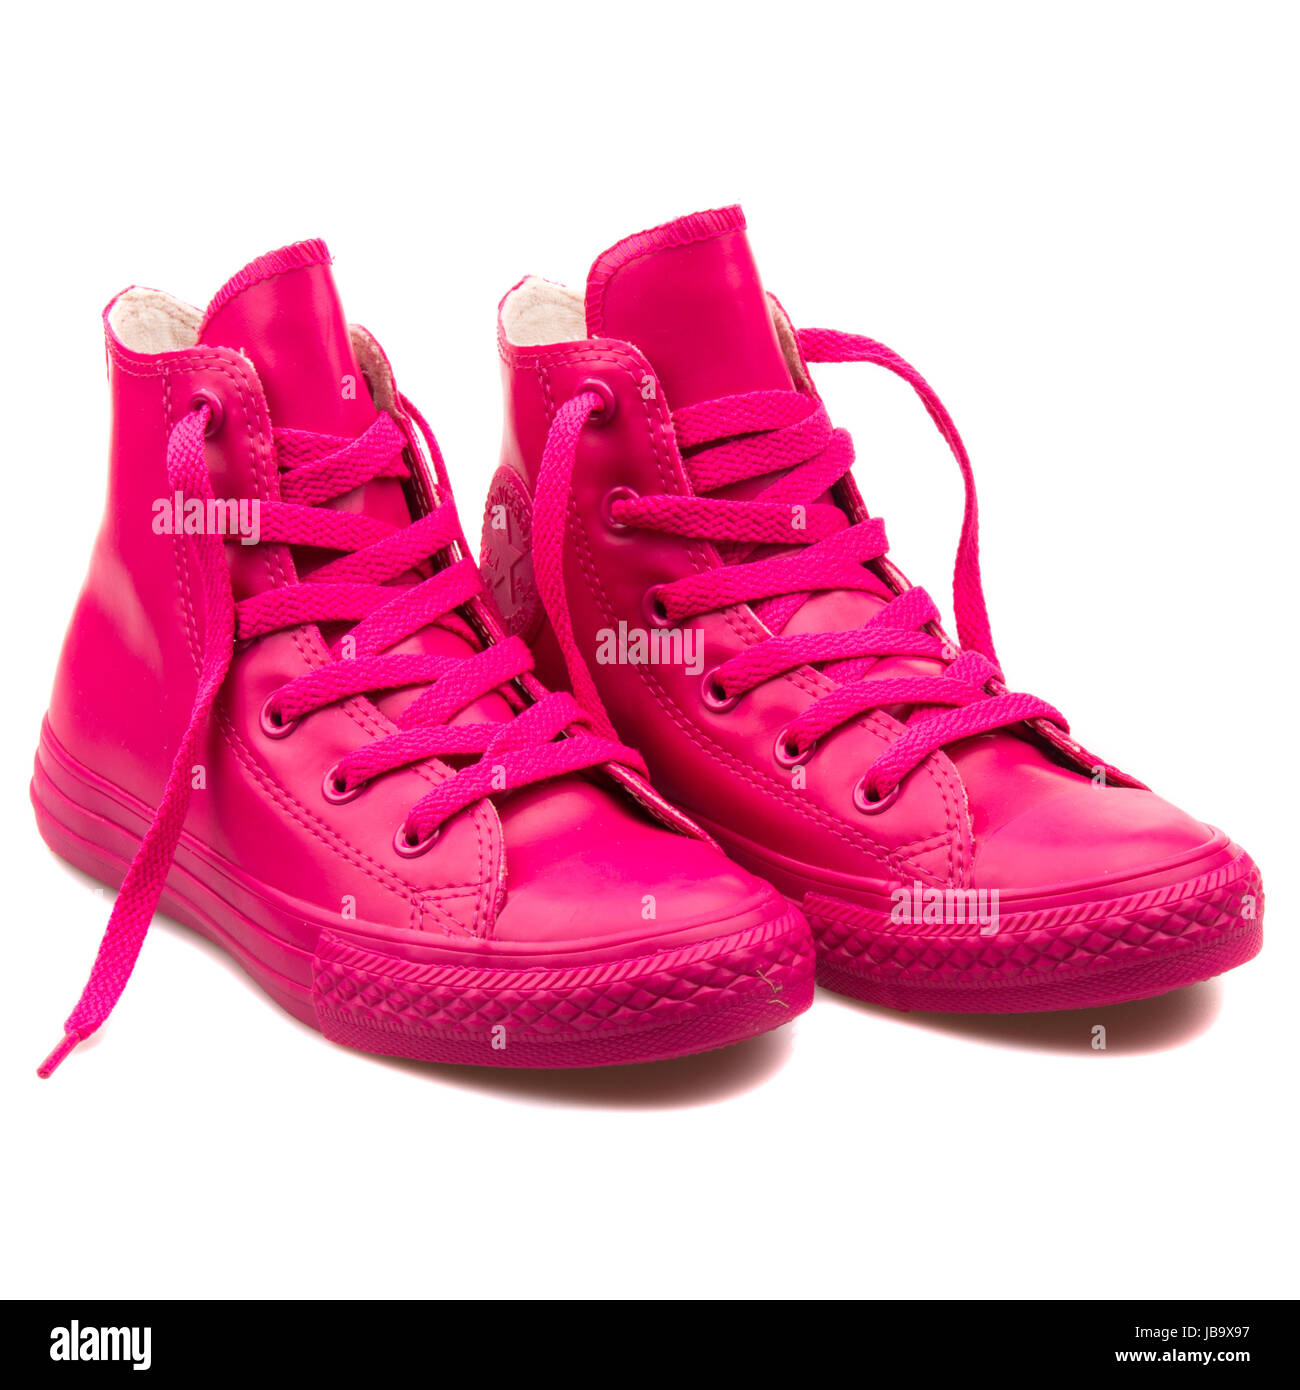 c6c6b4693ea1ad Converse Chuck Taylor All Star Hi Cosmos Pink Youth s Shoes - 345285C -  Stock Image